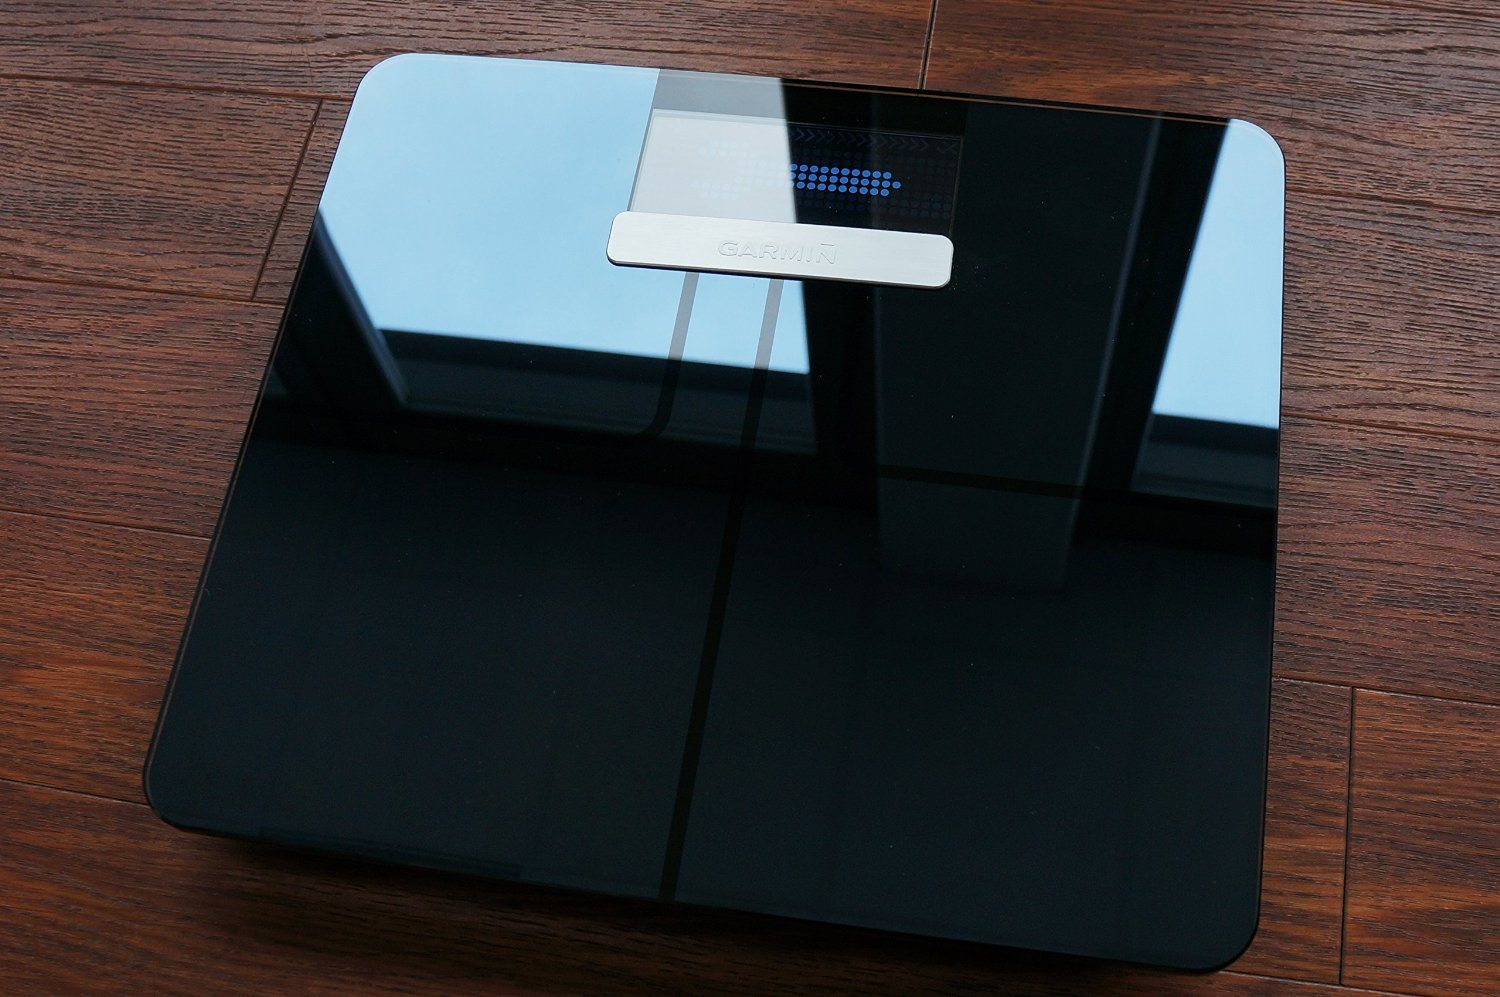 review garmin index smart scale 2 - Review: Garmin Index Smart Scale